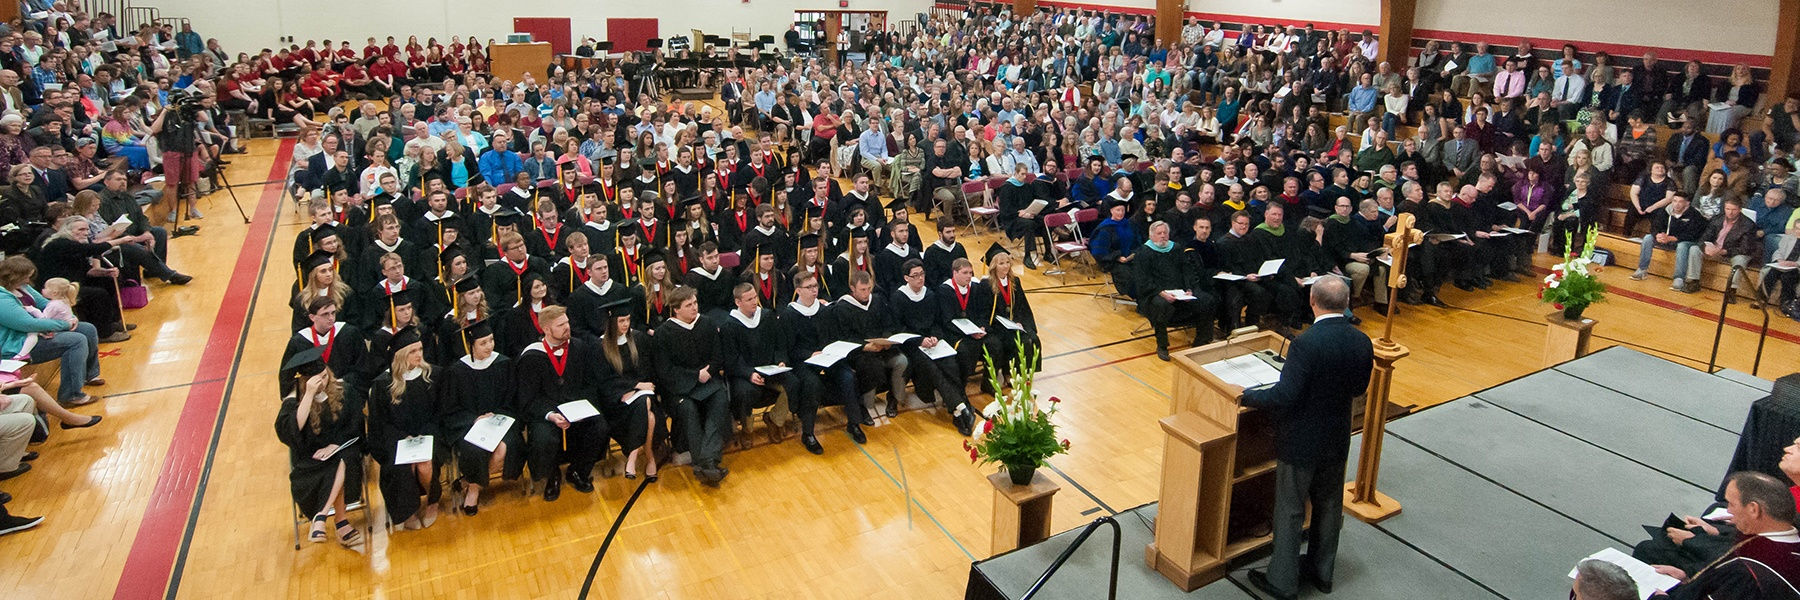 People seated in the Ronald J. Younge gymnasium for a commencement ceremony listening to the guest speaker at a podium.